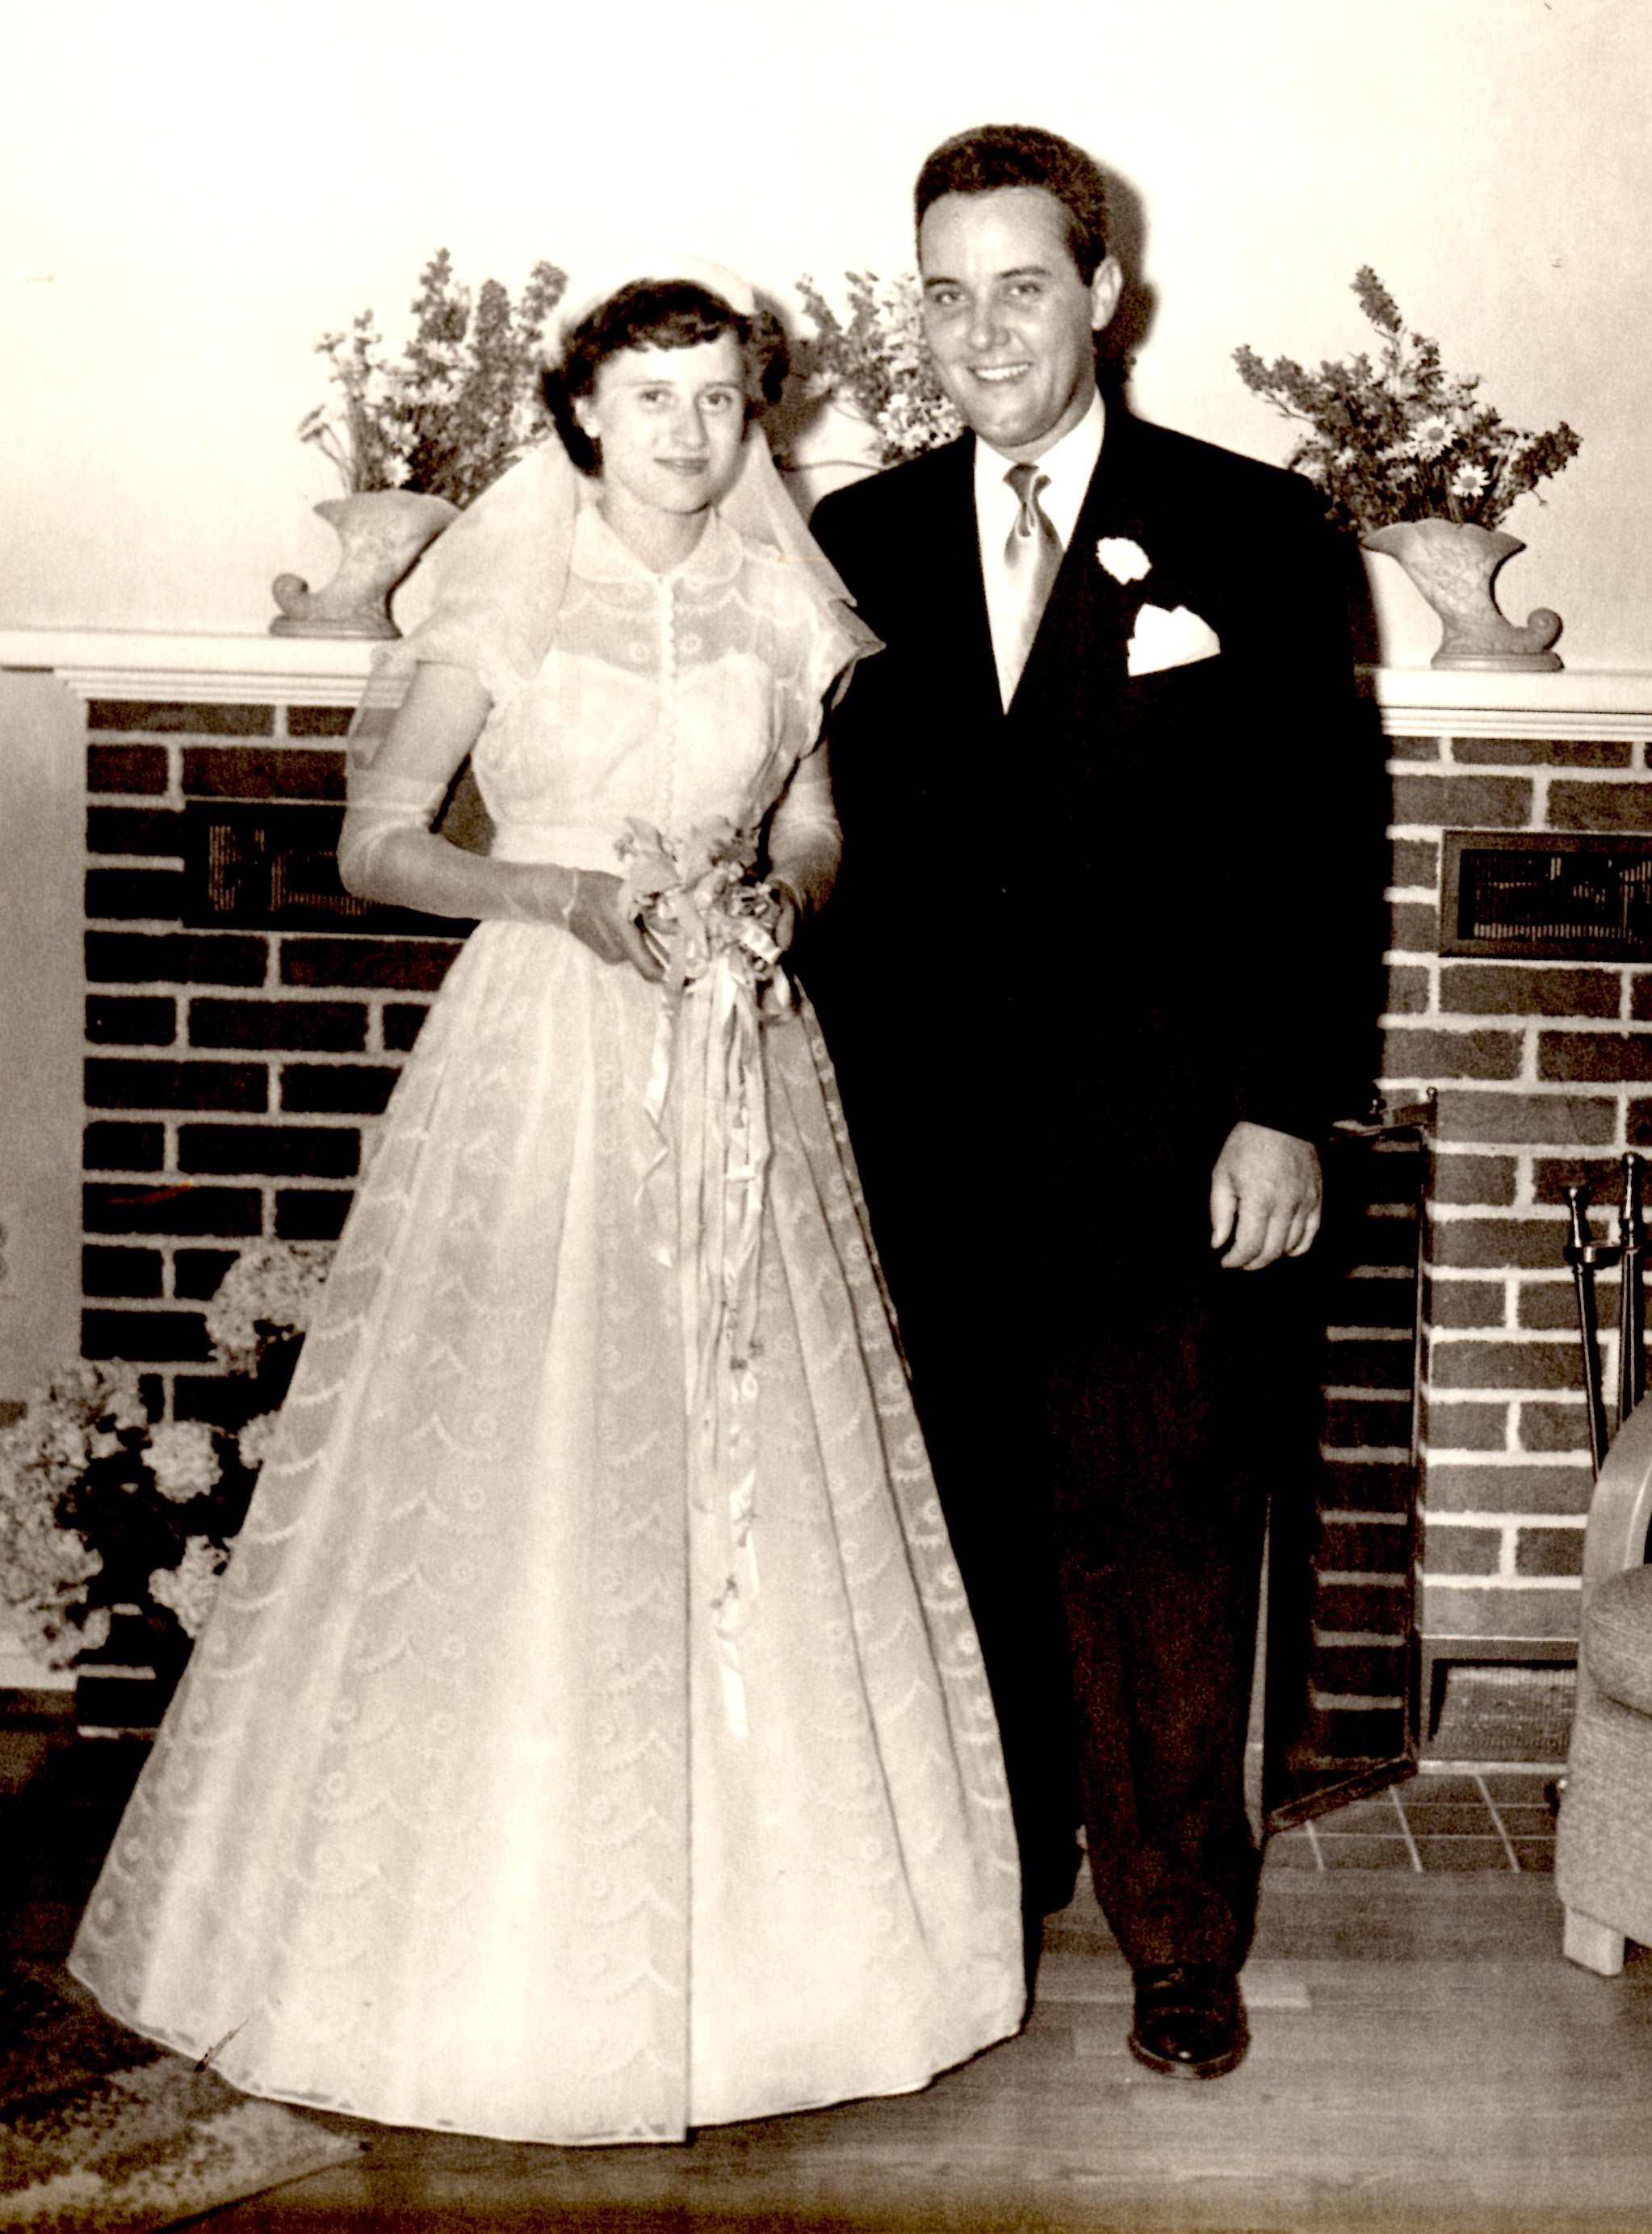 Helen and George Pratte, 1949